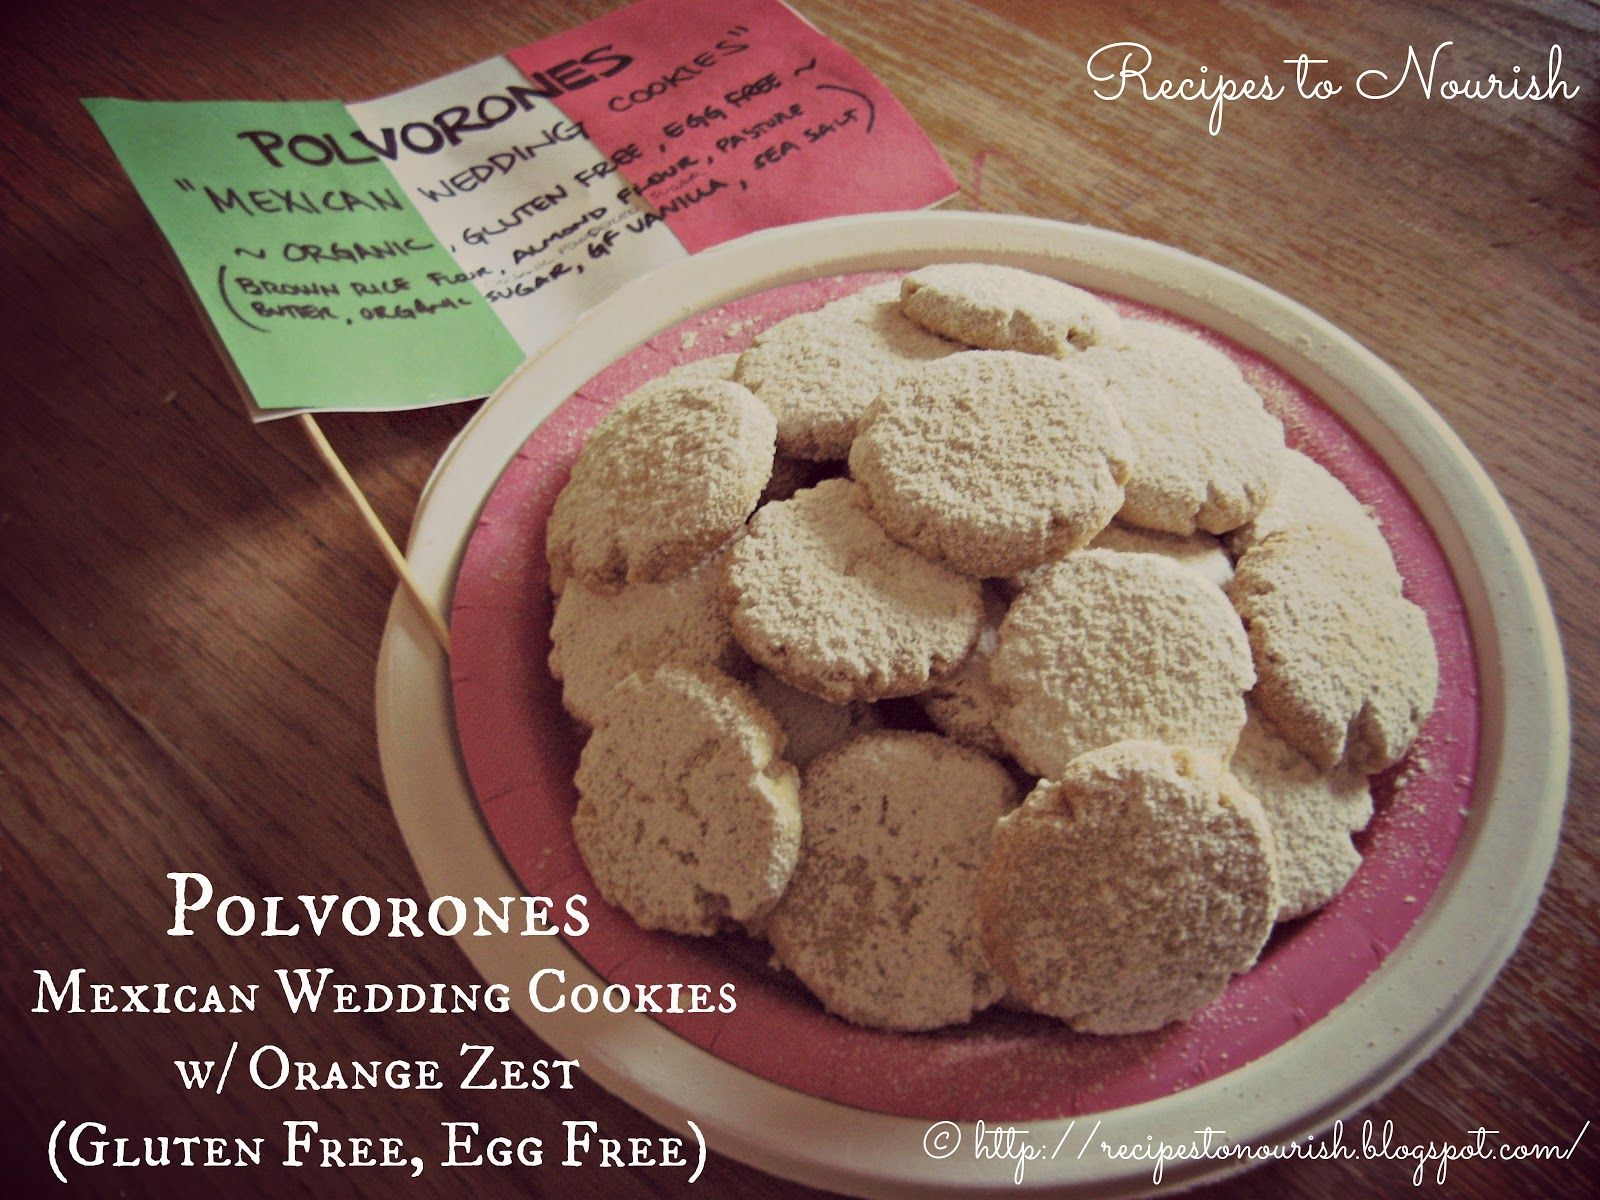 Polvorones Mexican Wedding Cookies w/ Orange Zest